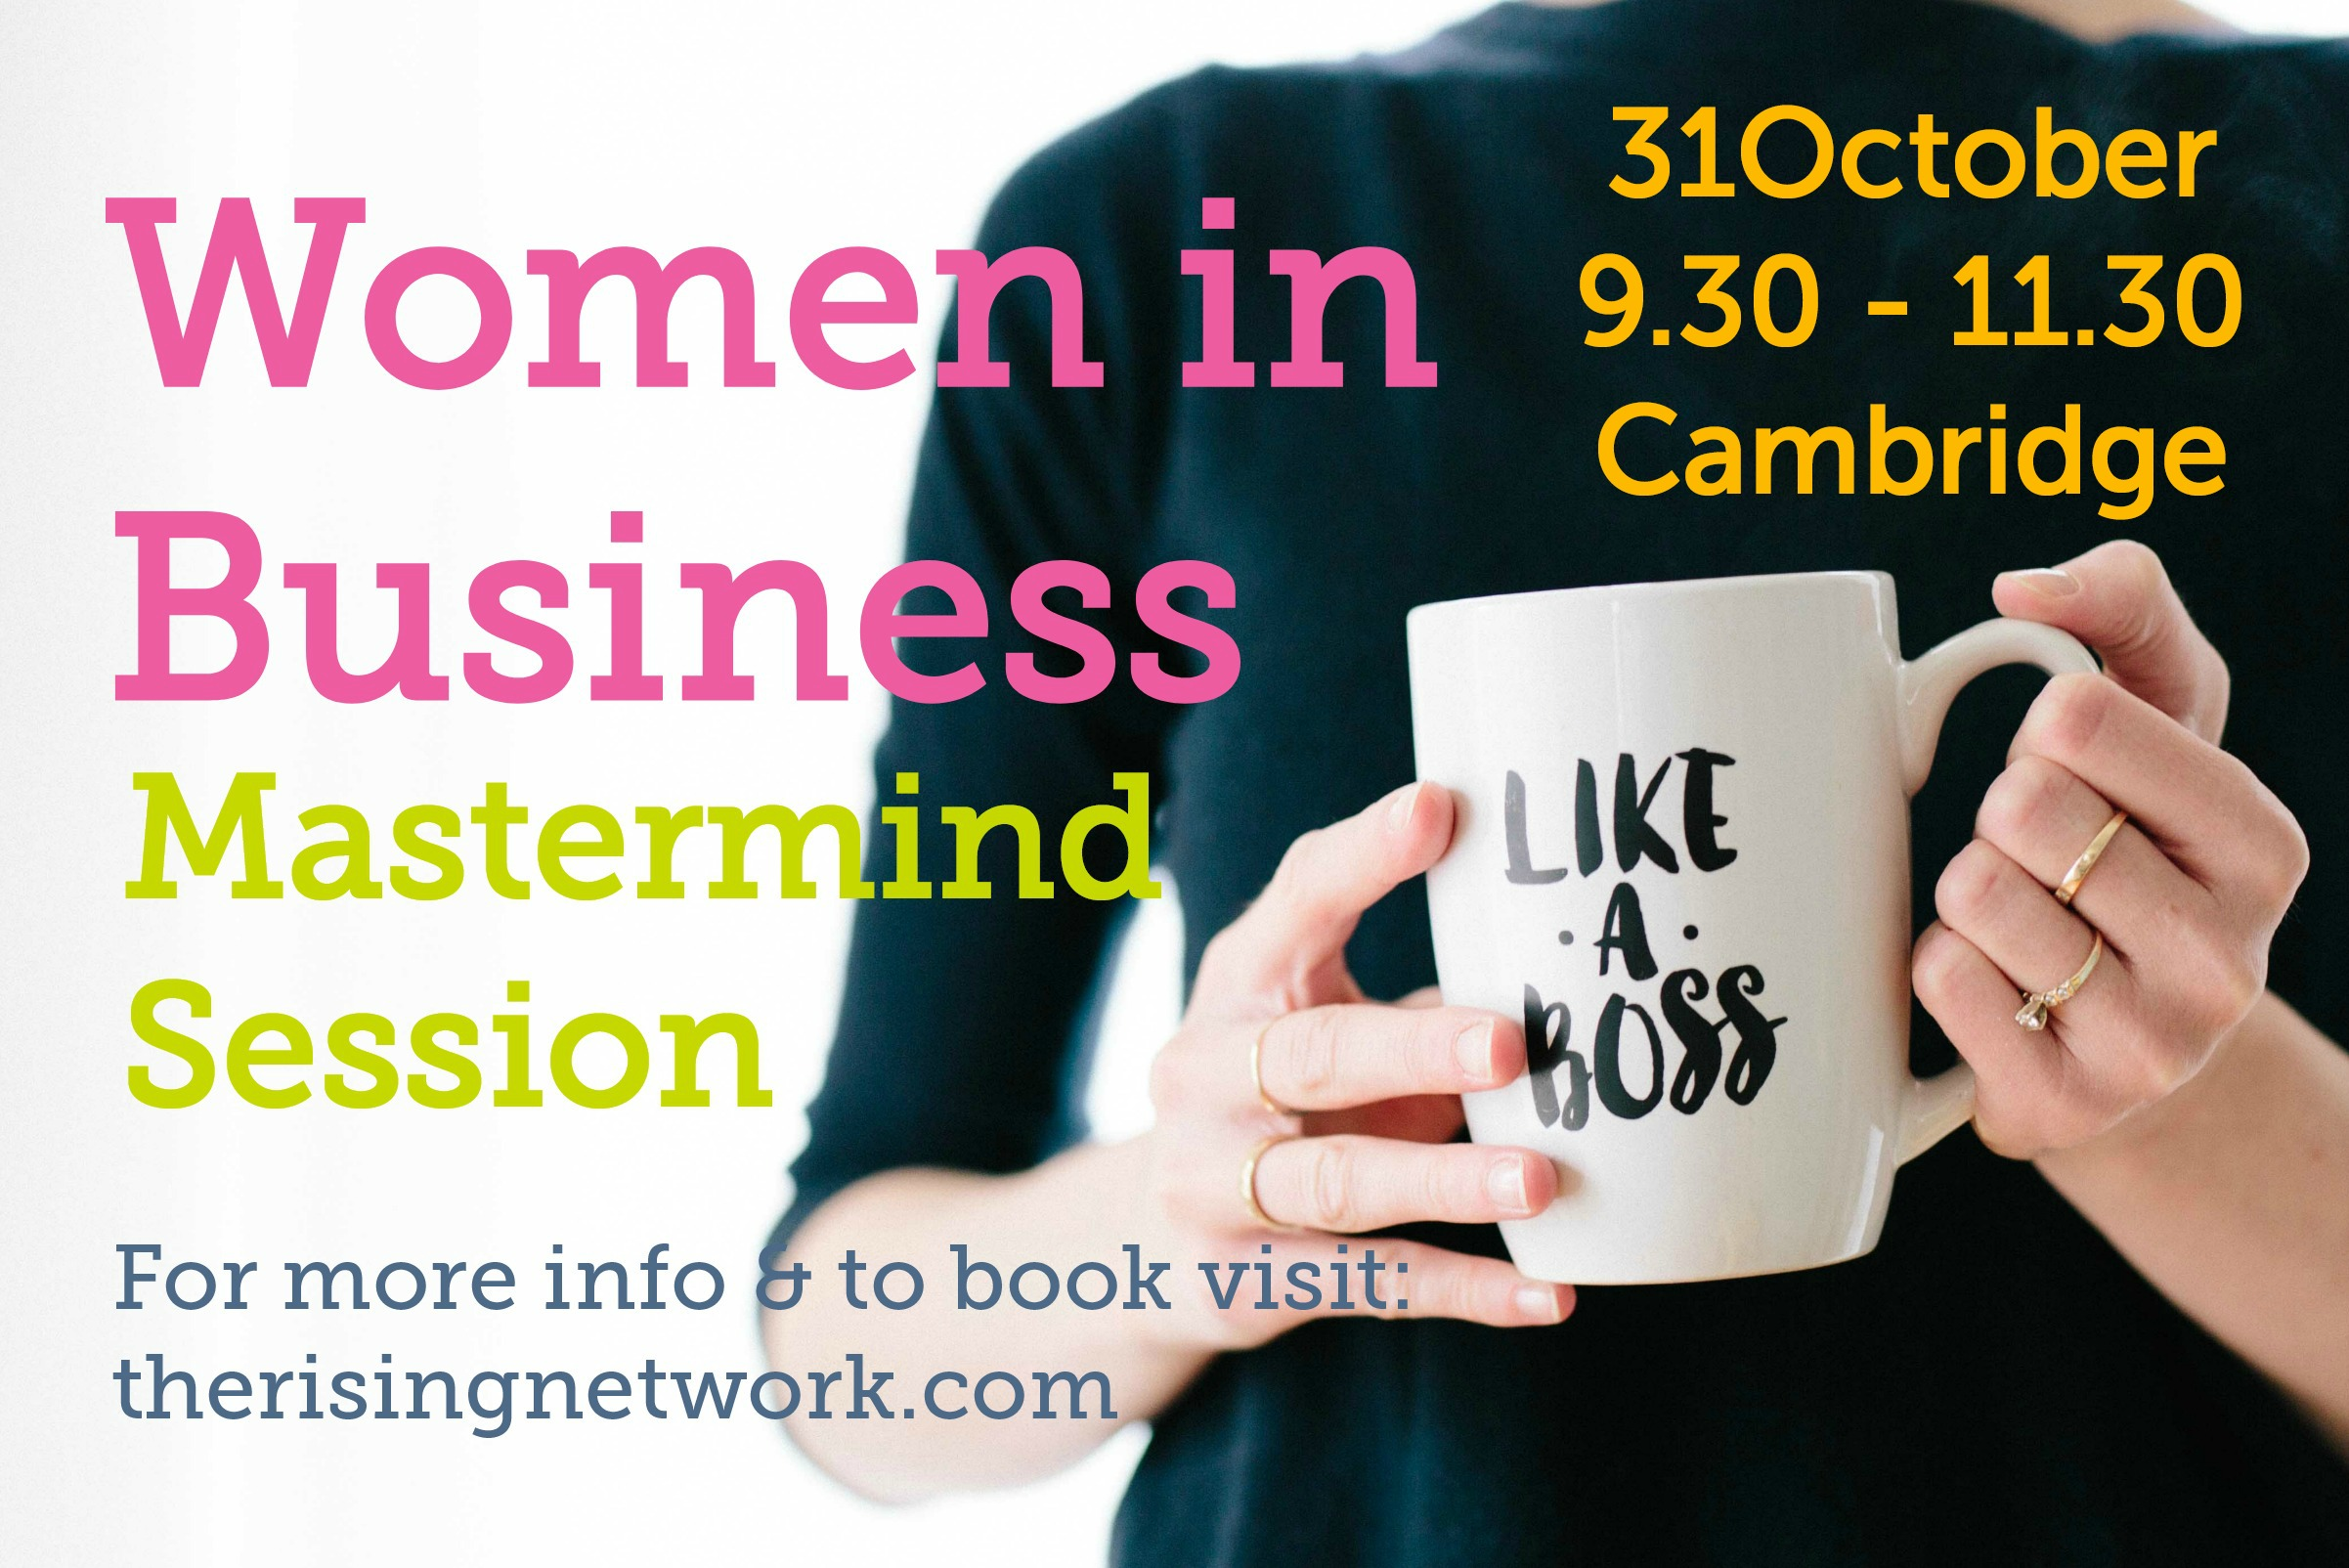 women in business mastermind 31.10.17